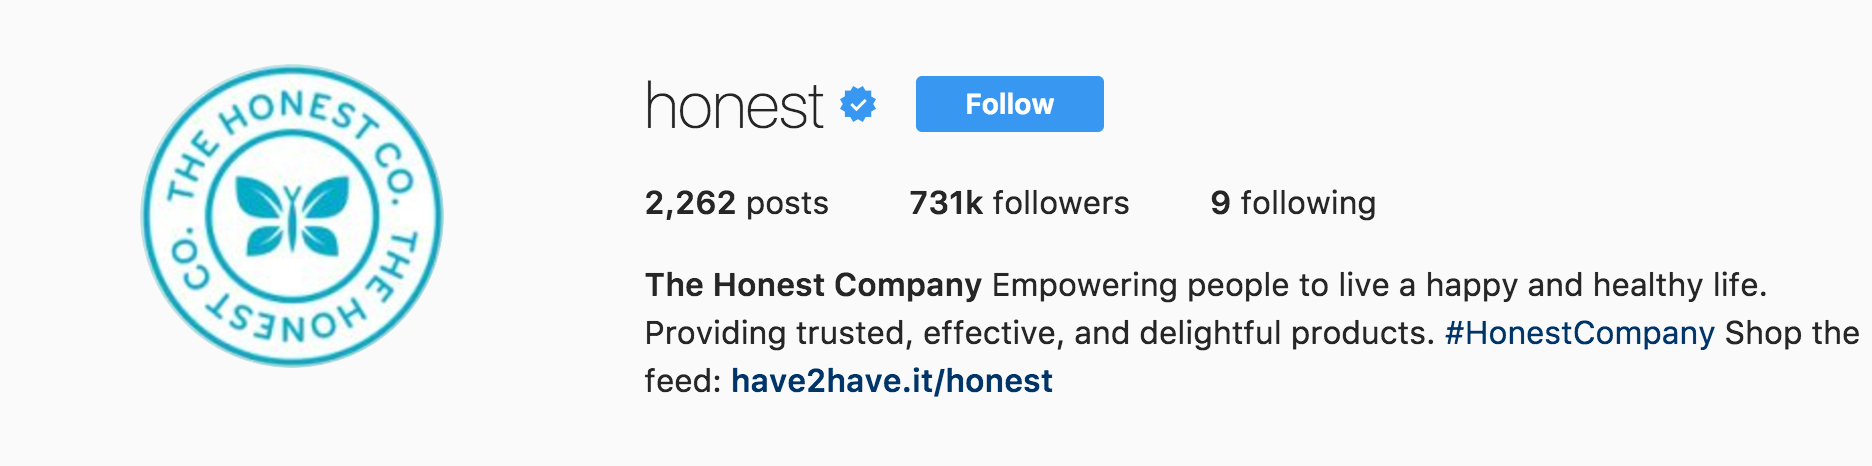 The Honest Company Instagram